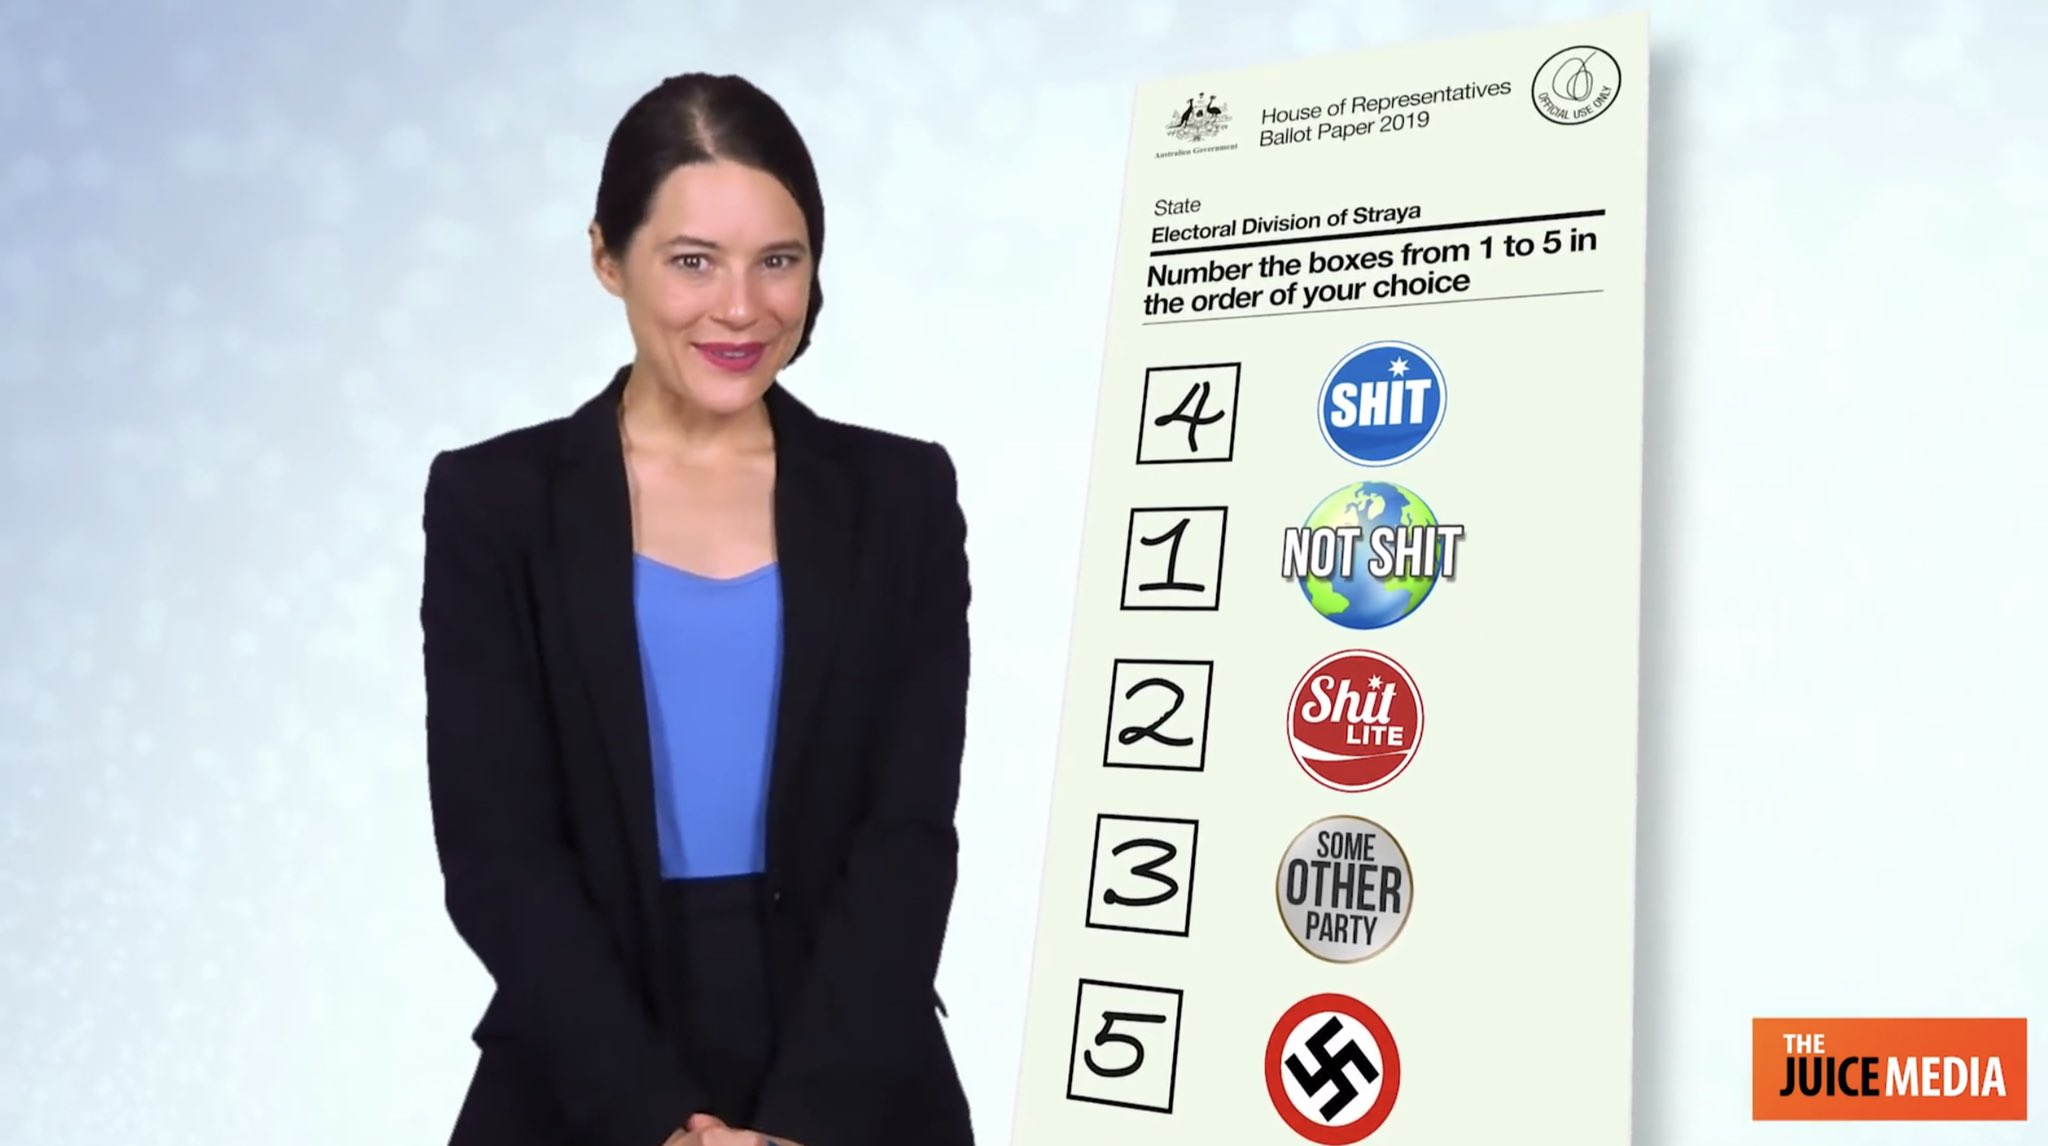 Preferential voting in action